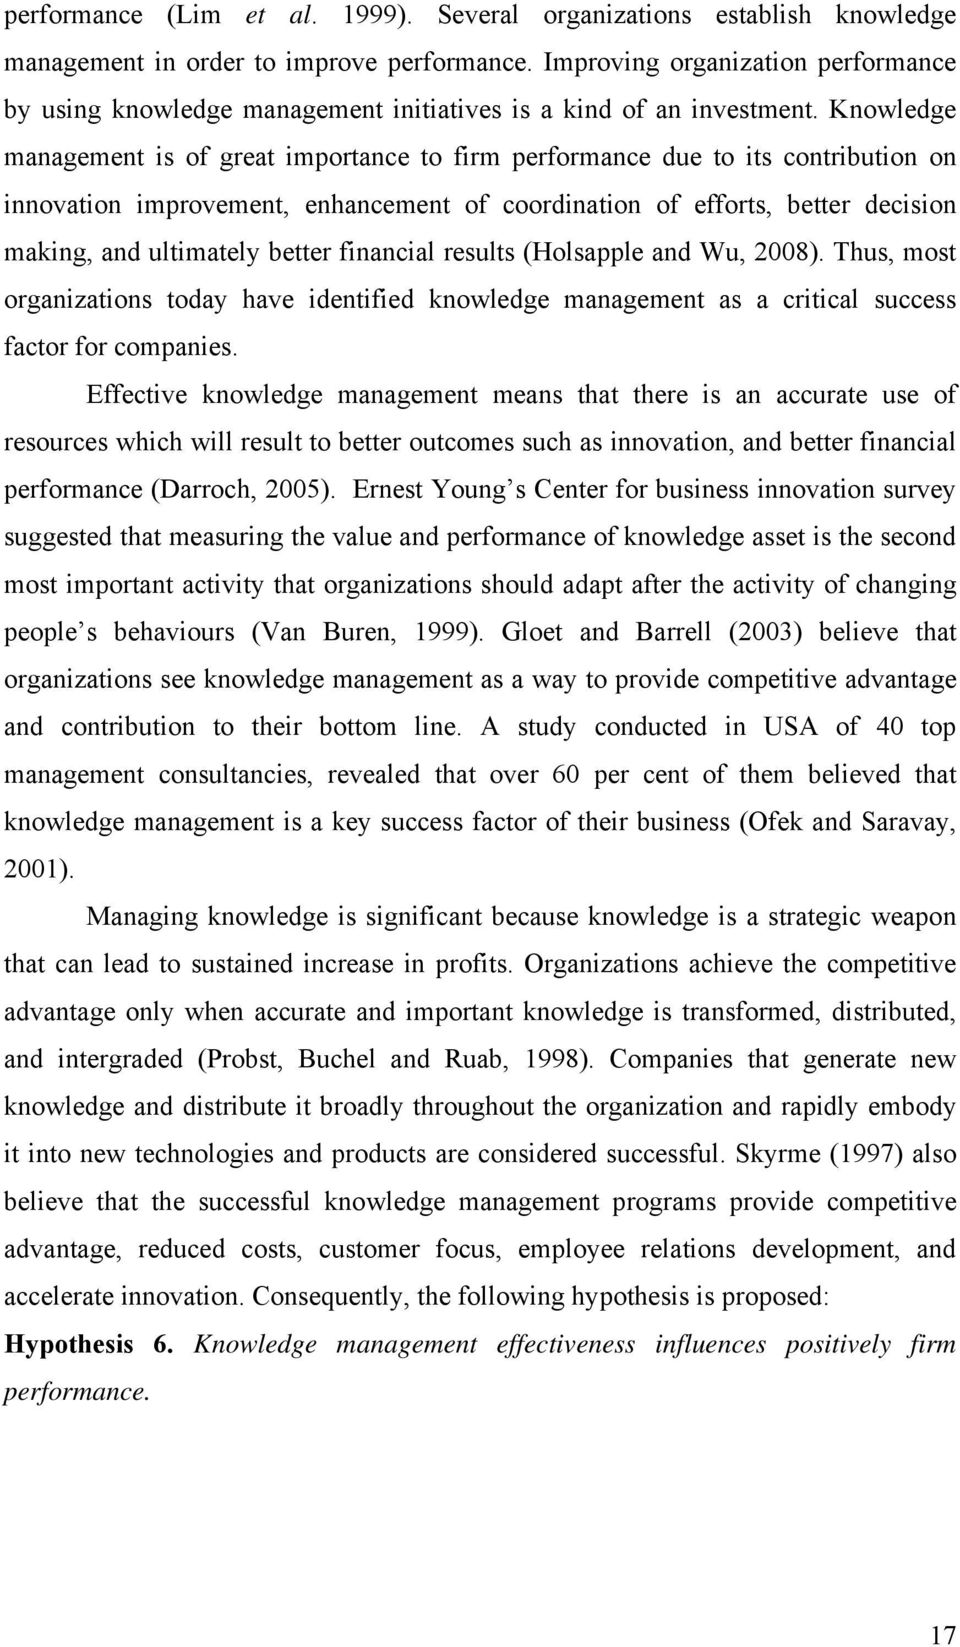 Knowledge management is of great importance to firm performance due to its contribution on innovation improvement, enhancement of coordination of efforts, better decision making, and ultimately